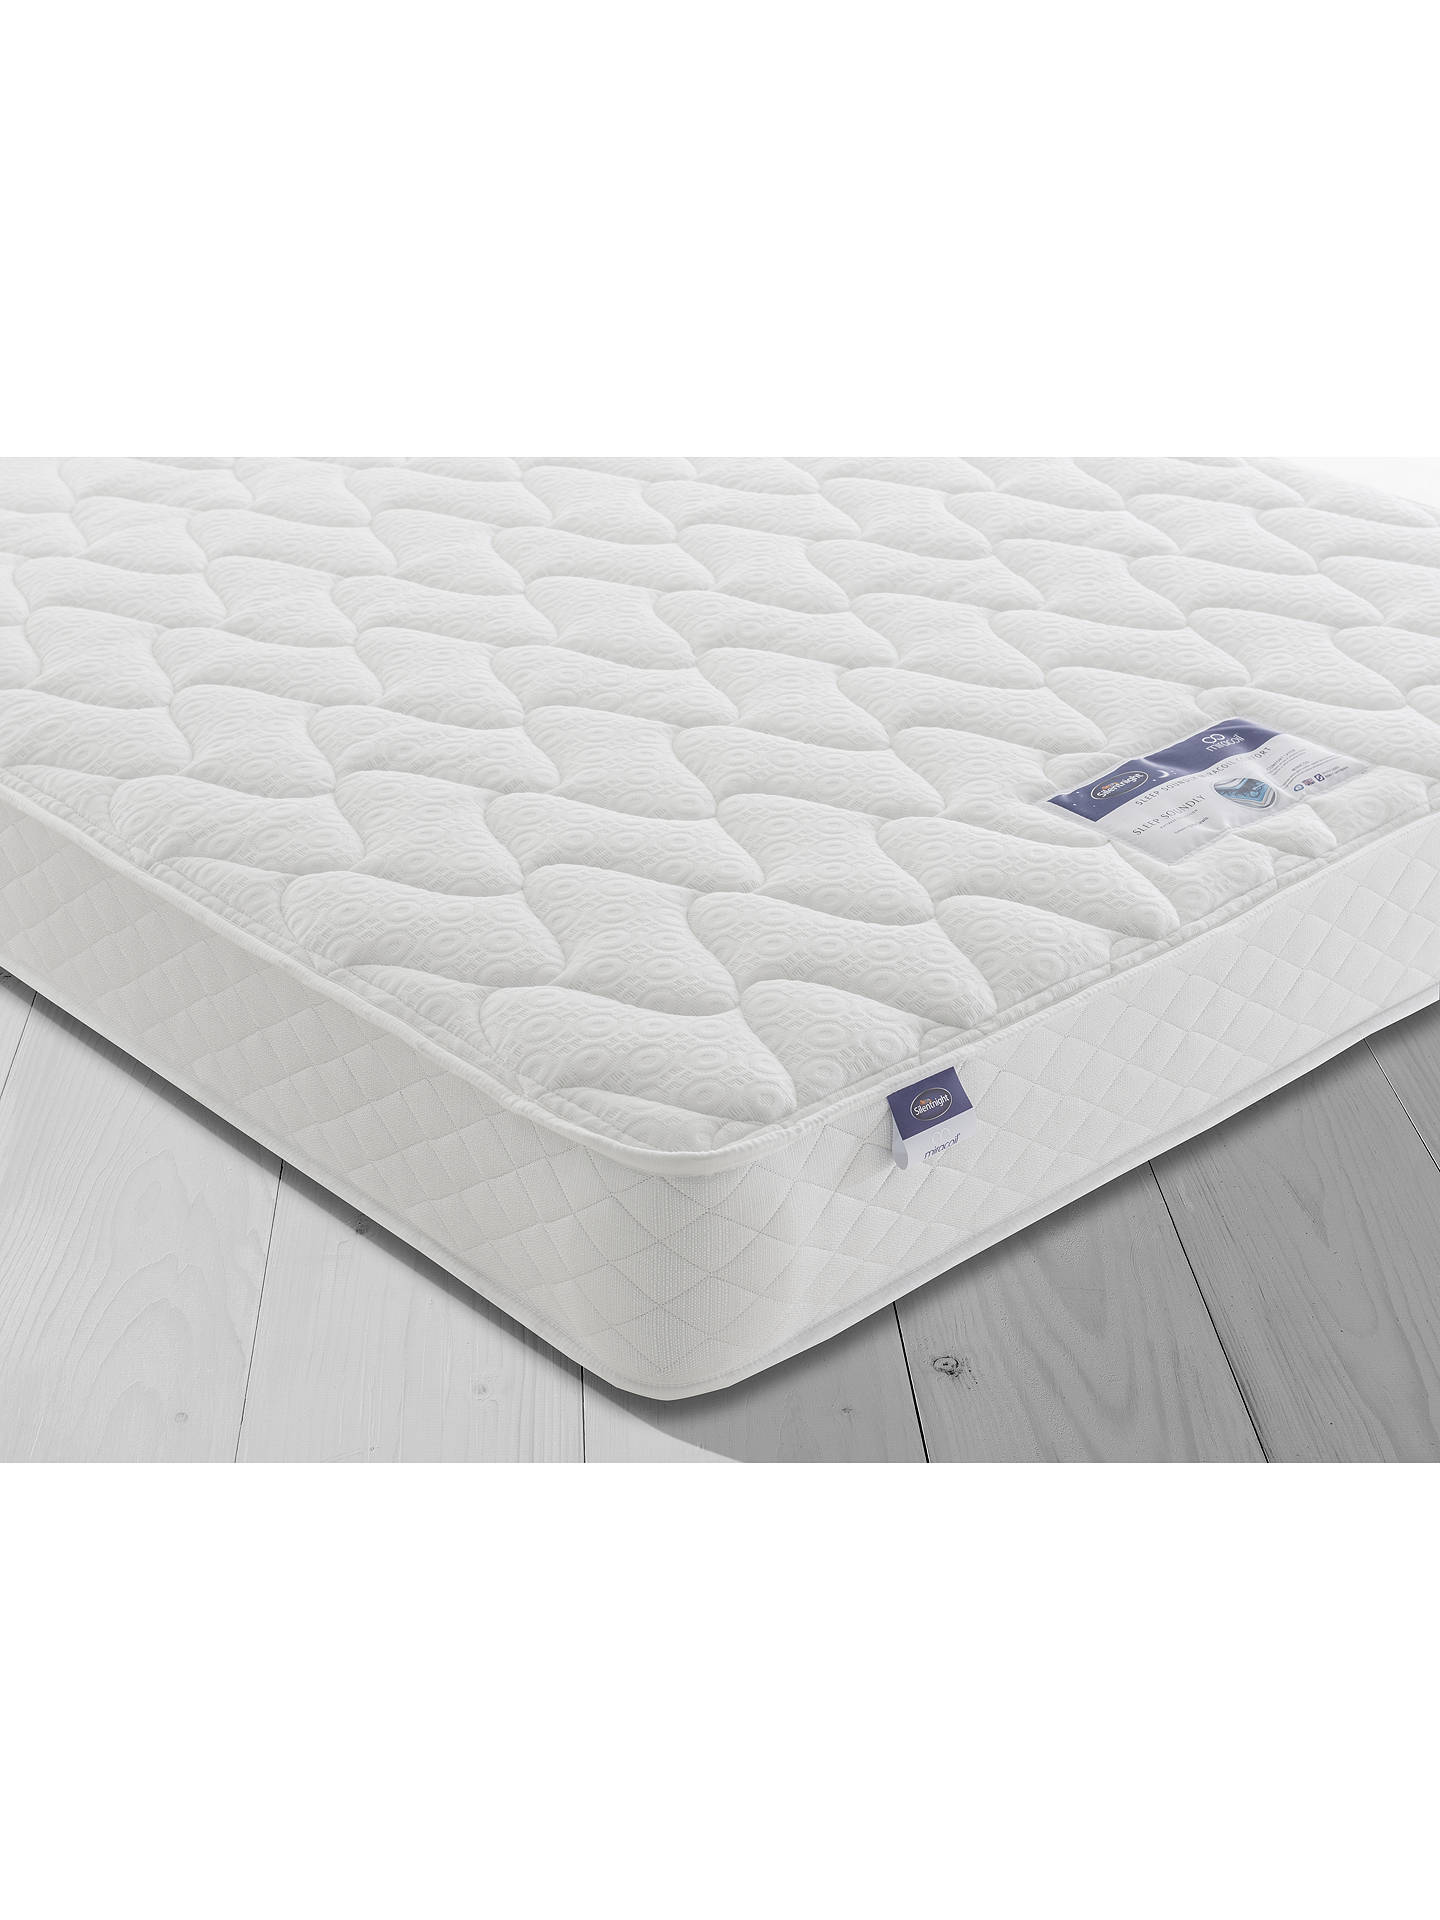 BuySilentnight Sleep Soundly Miracoil Comfort Divan Base and Mattress Set, FSC-Certified (Picea Abies, Chipboard), Firm, Double Online at johnlewis.com